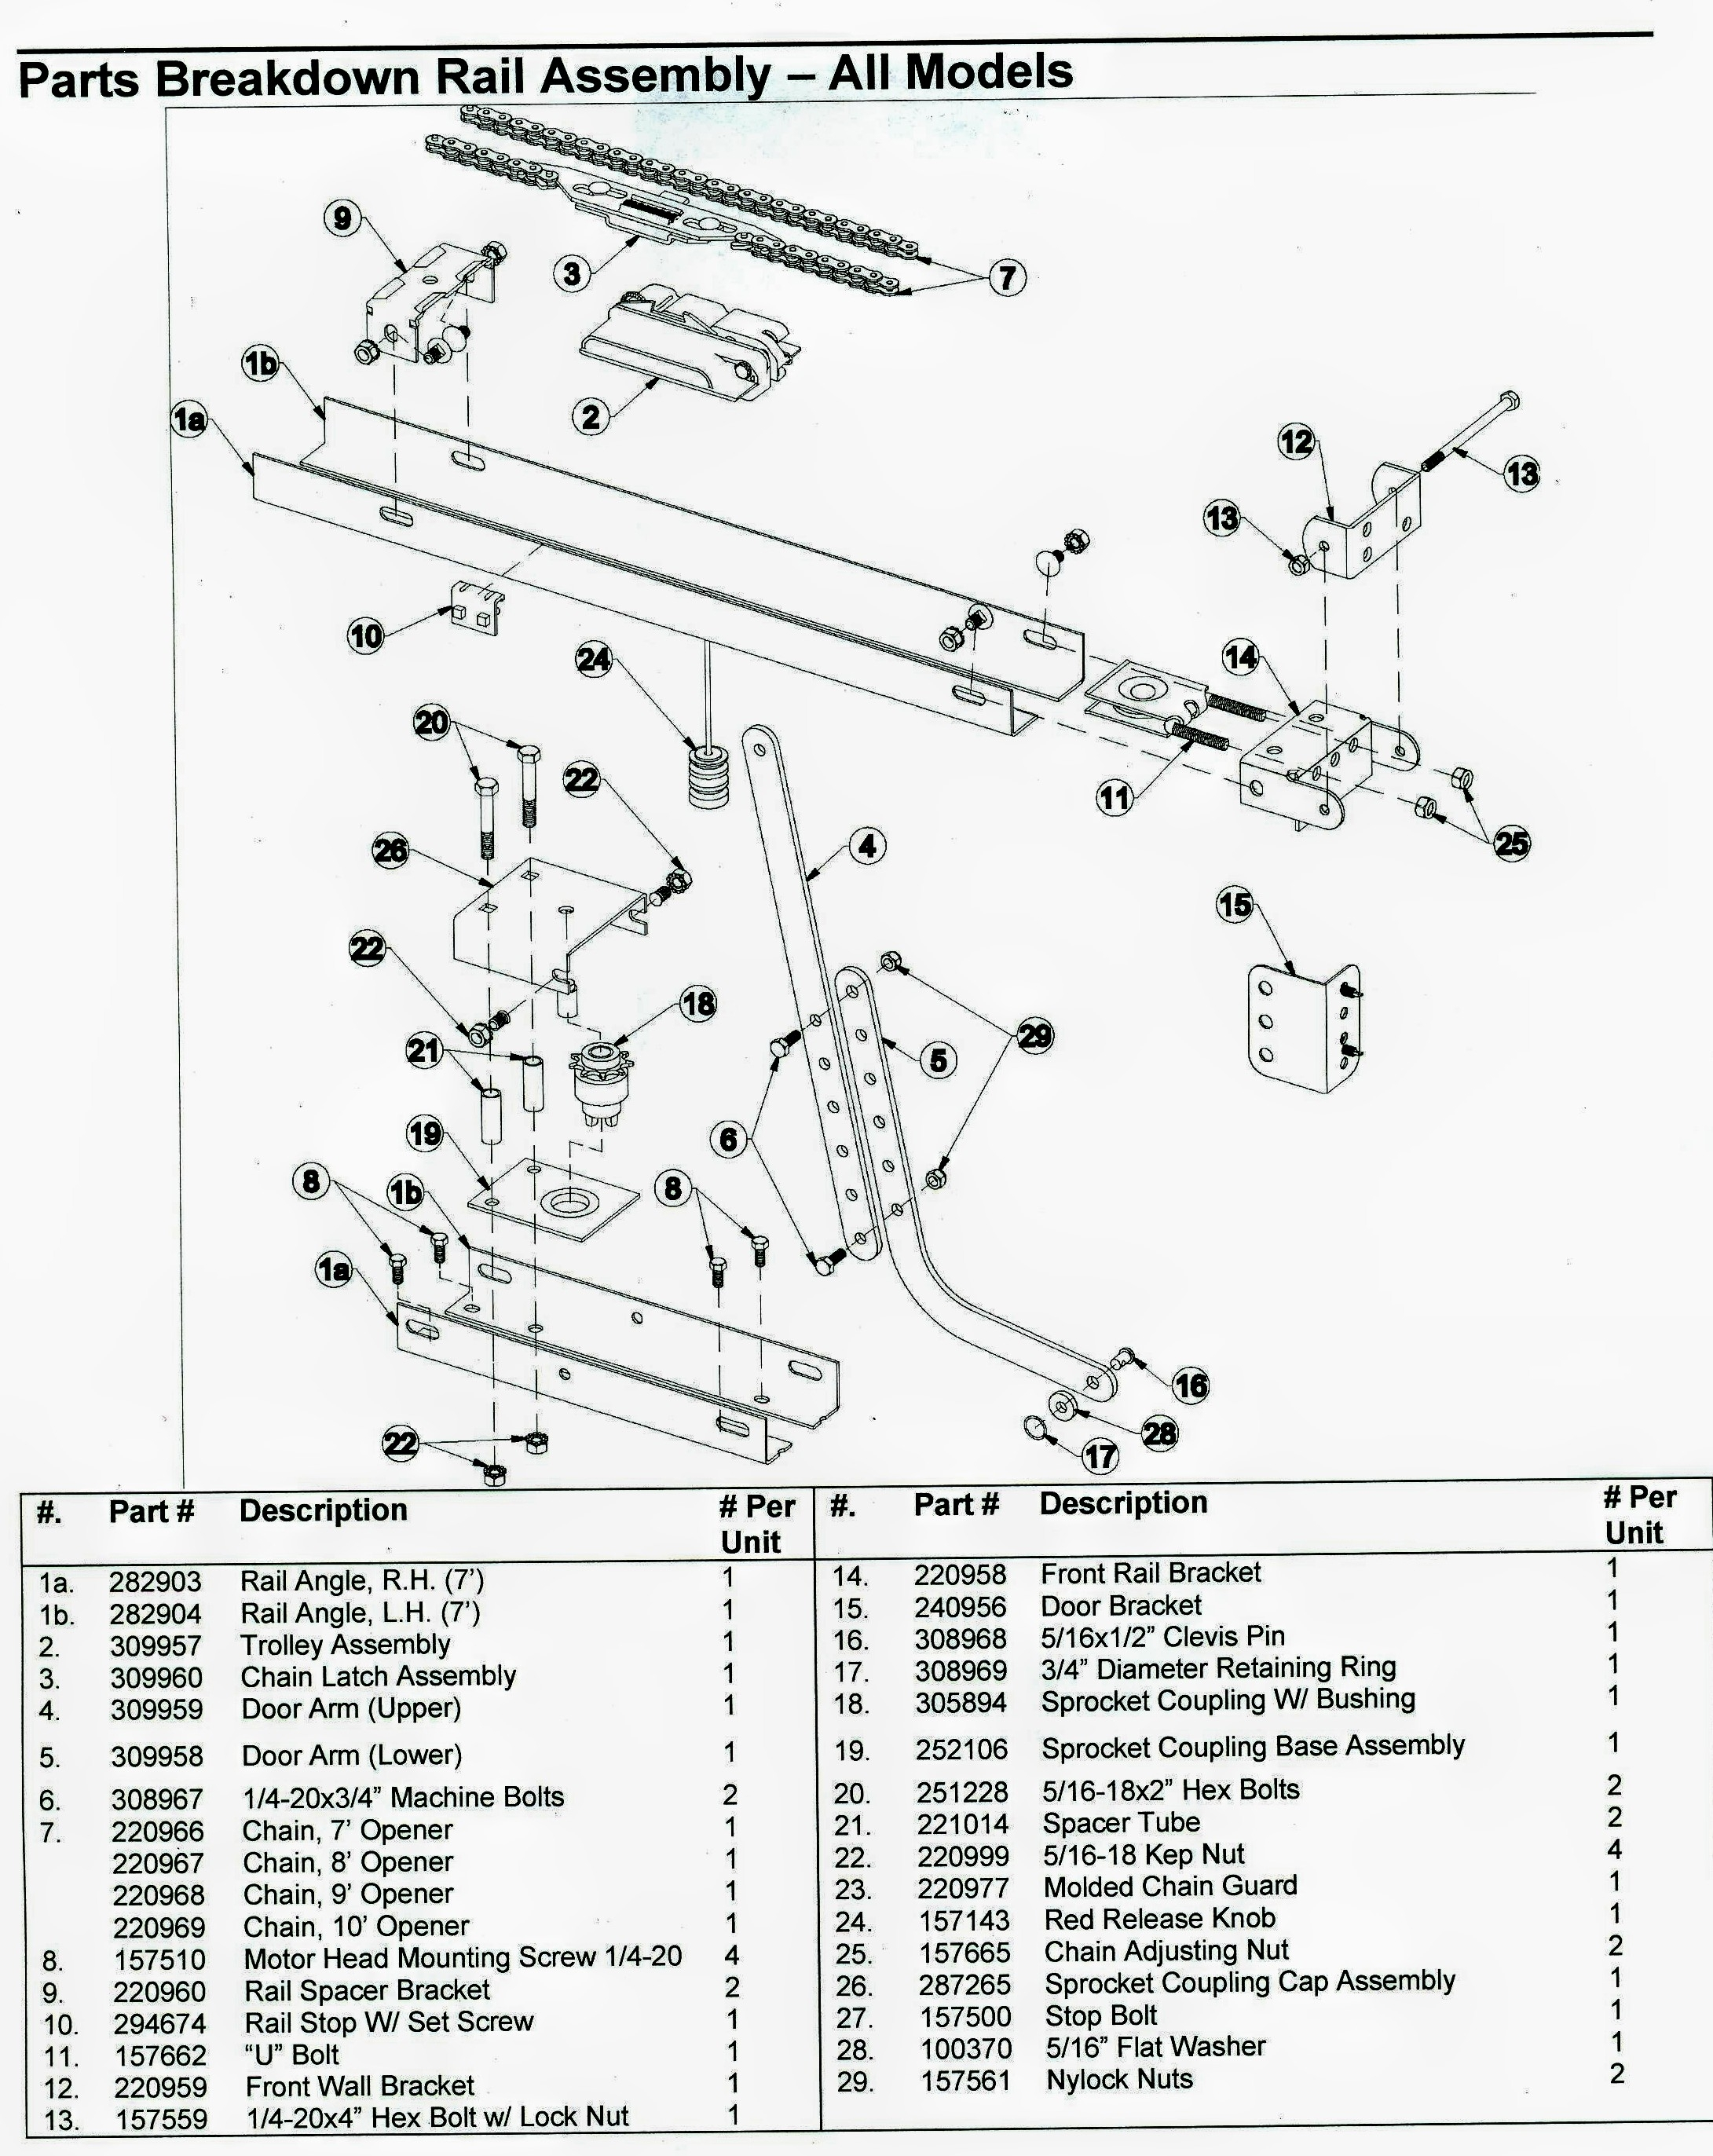 wiring diagram for liftmaster garage door opener on free throughout chamberlain garage door opener parts diagram wiring diagram for liftmaster garage door opener on free garage wiring diagram at aneh.co